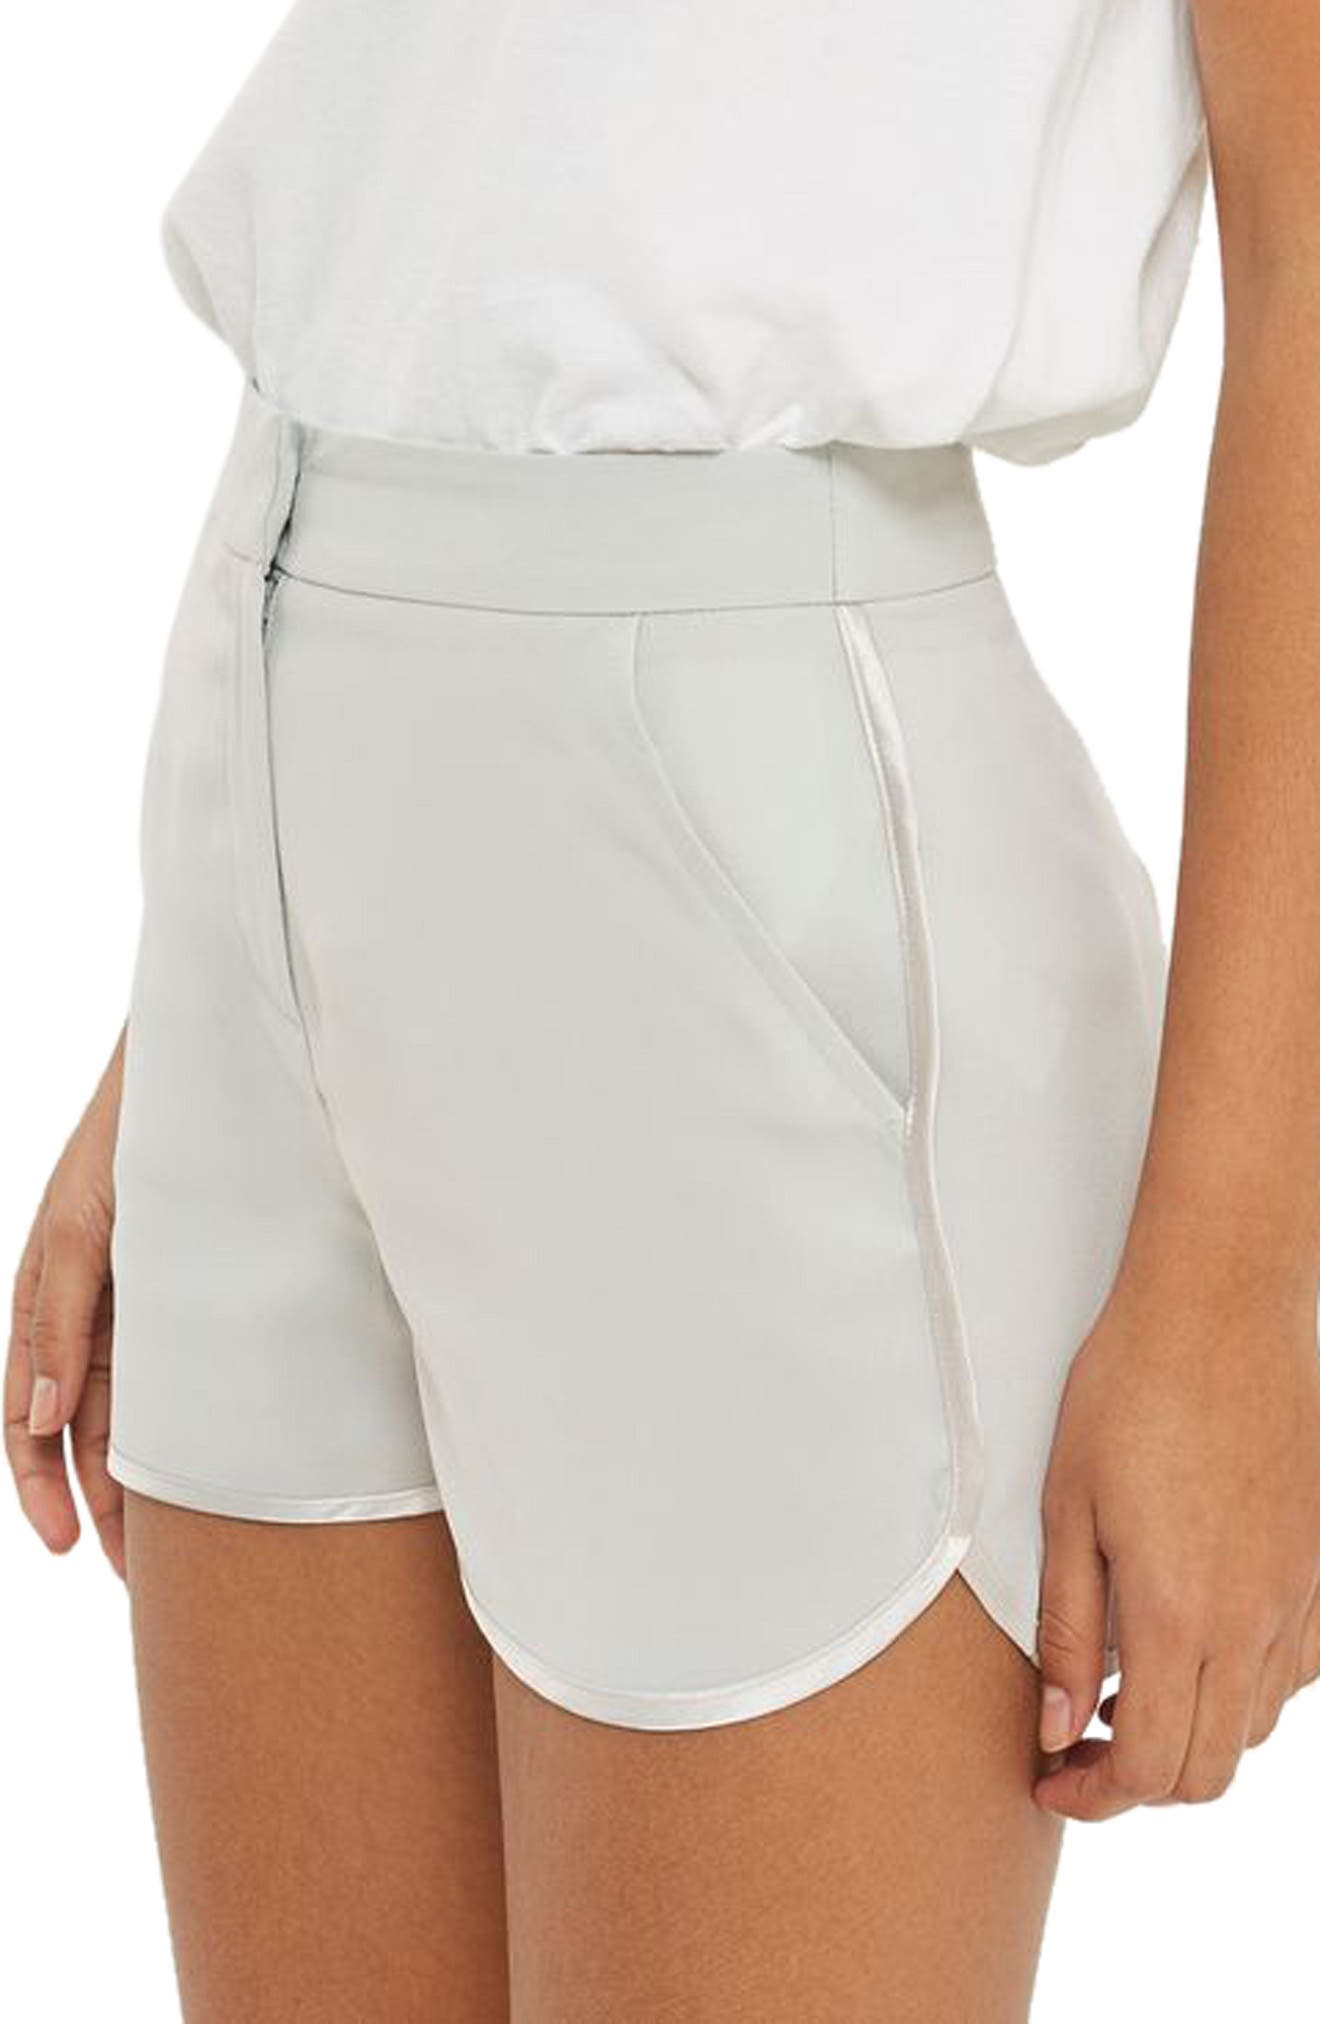 Topshop Satin Trim Runner Shorts